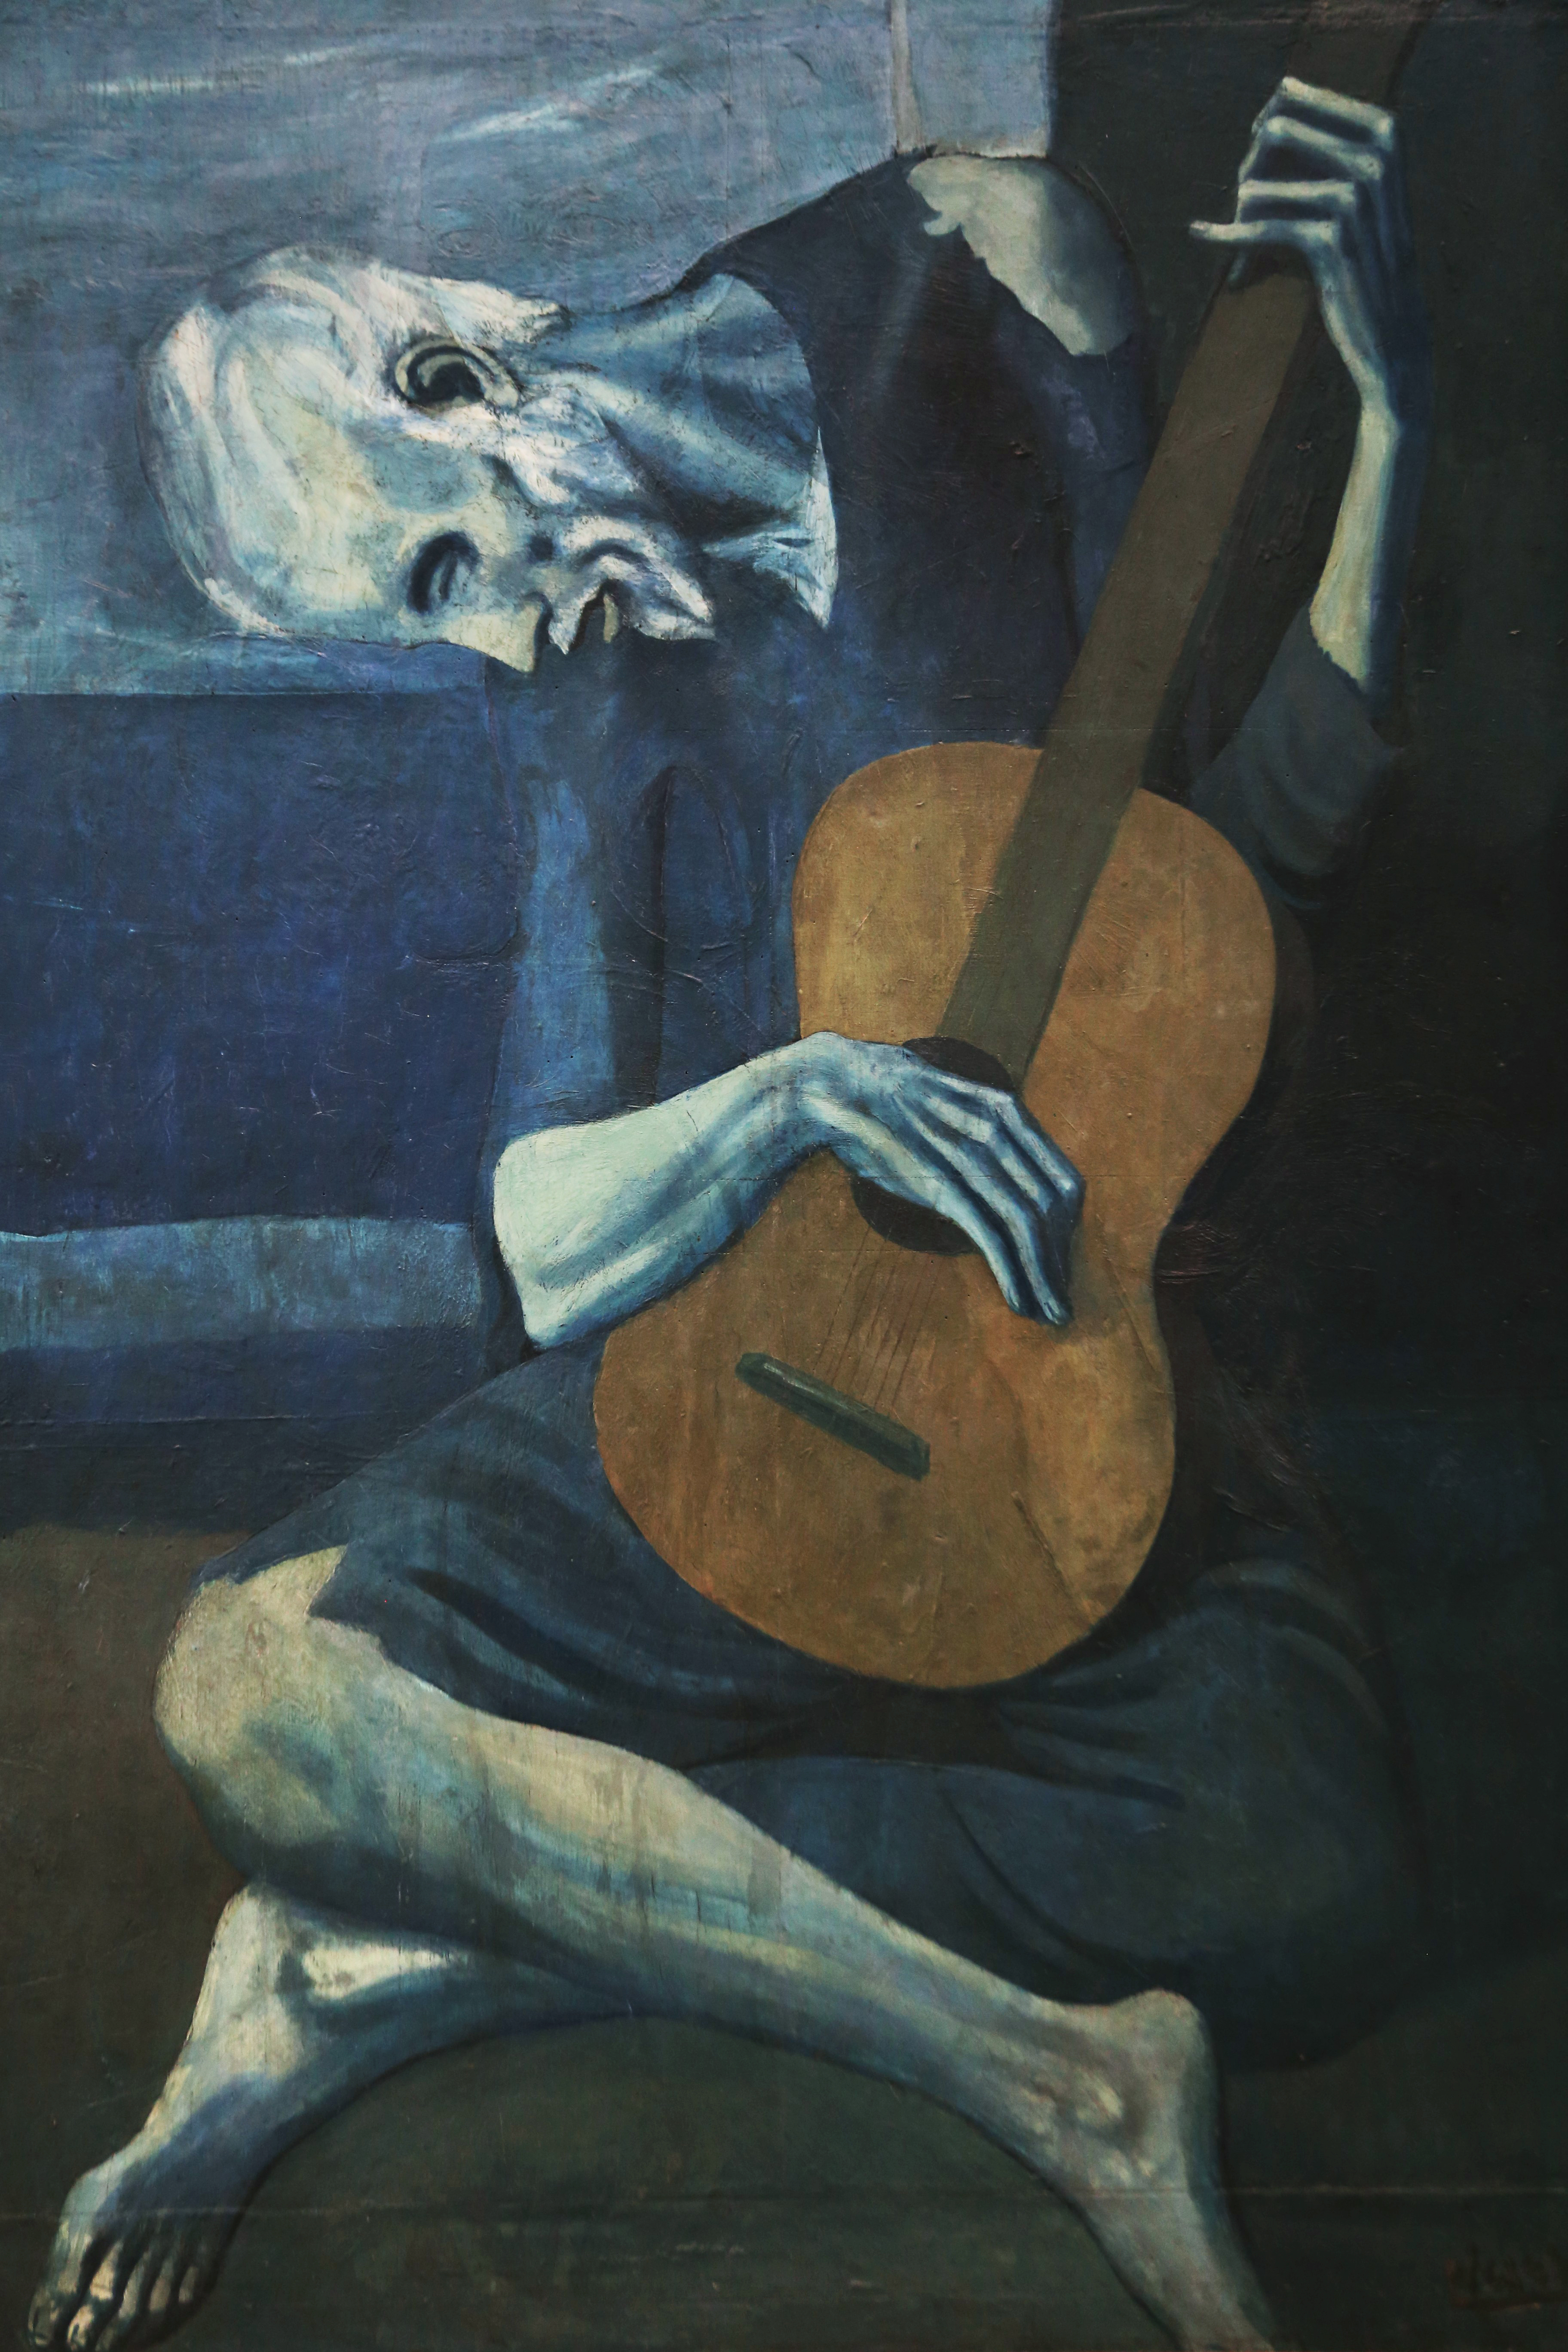 Drawn musician old style The The Old Guitarist Old